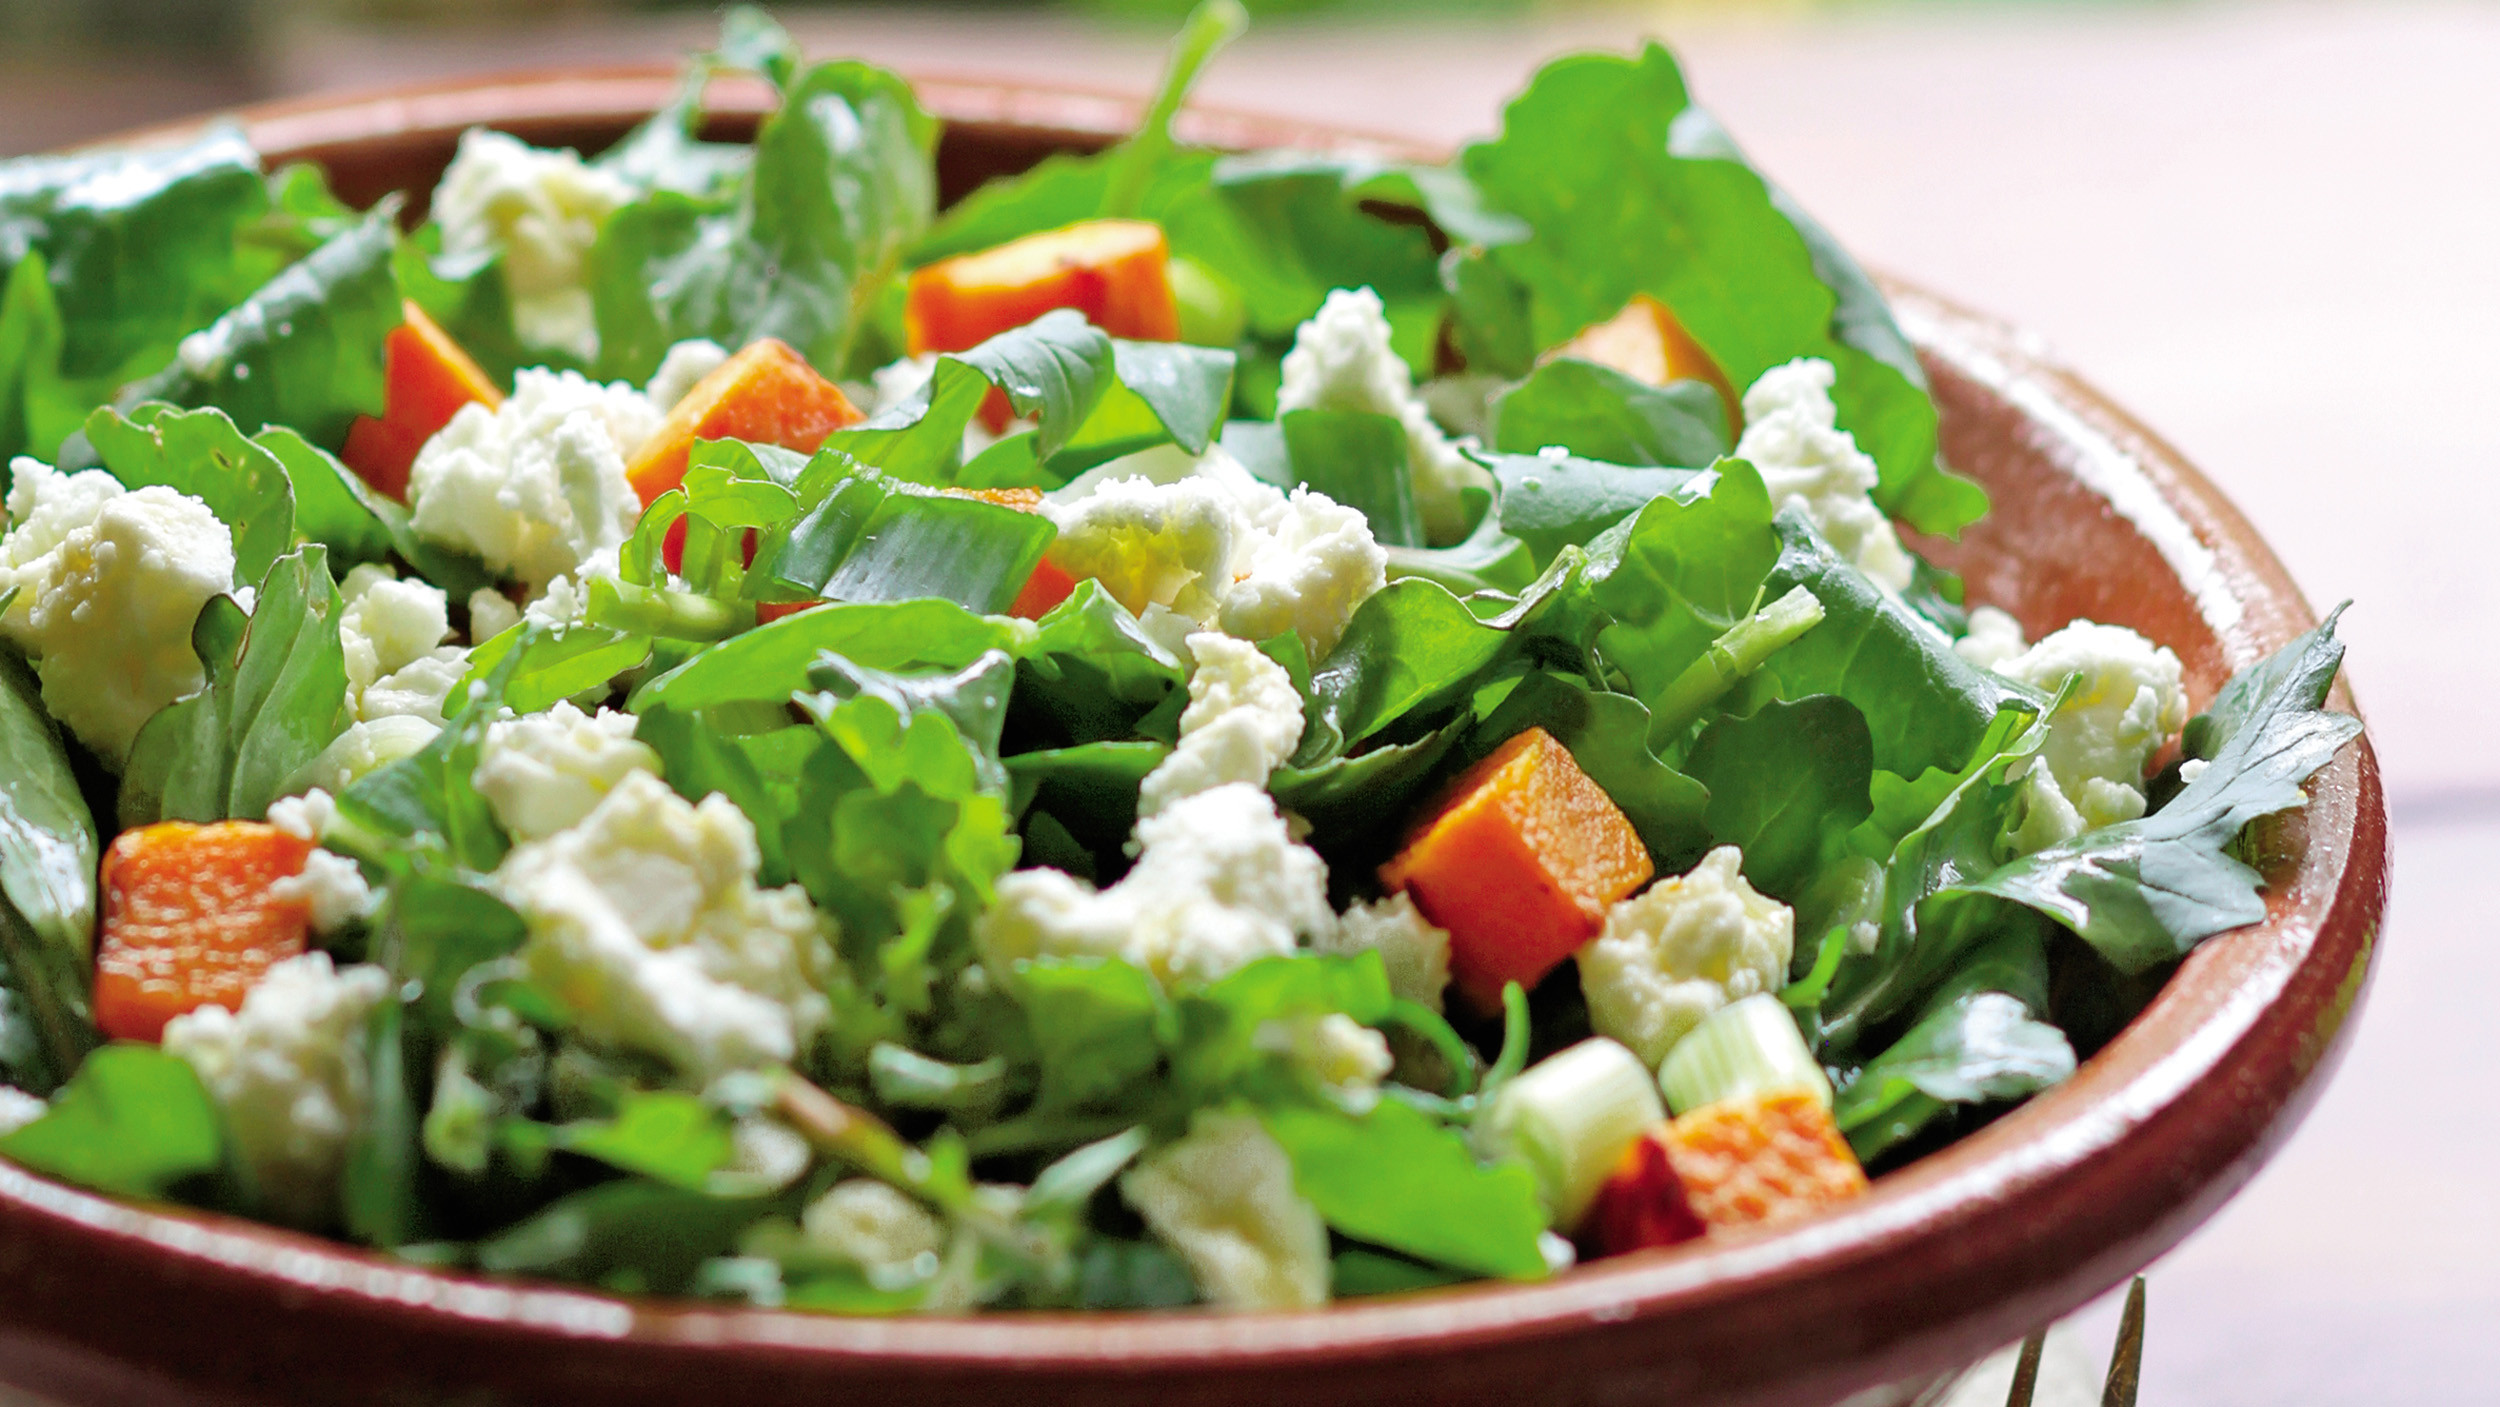 Healthy Salads To Eat  Healthy eating secrets and 3 super salad recipes from